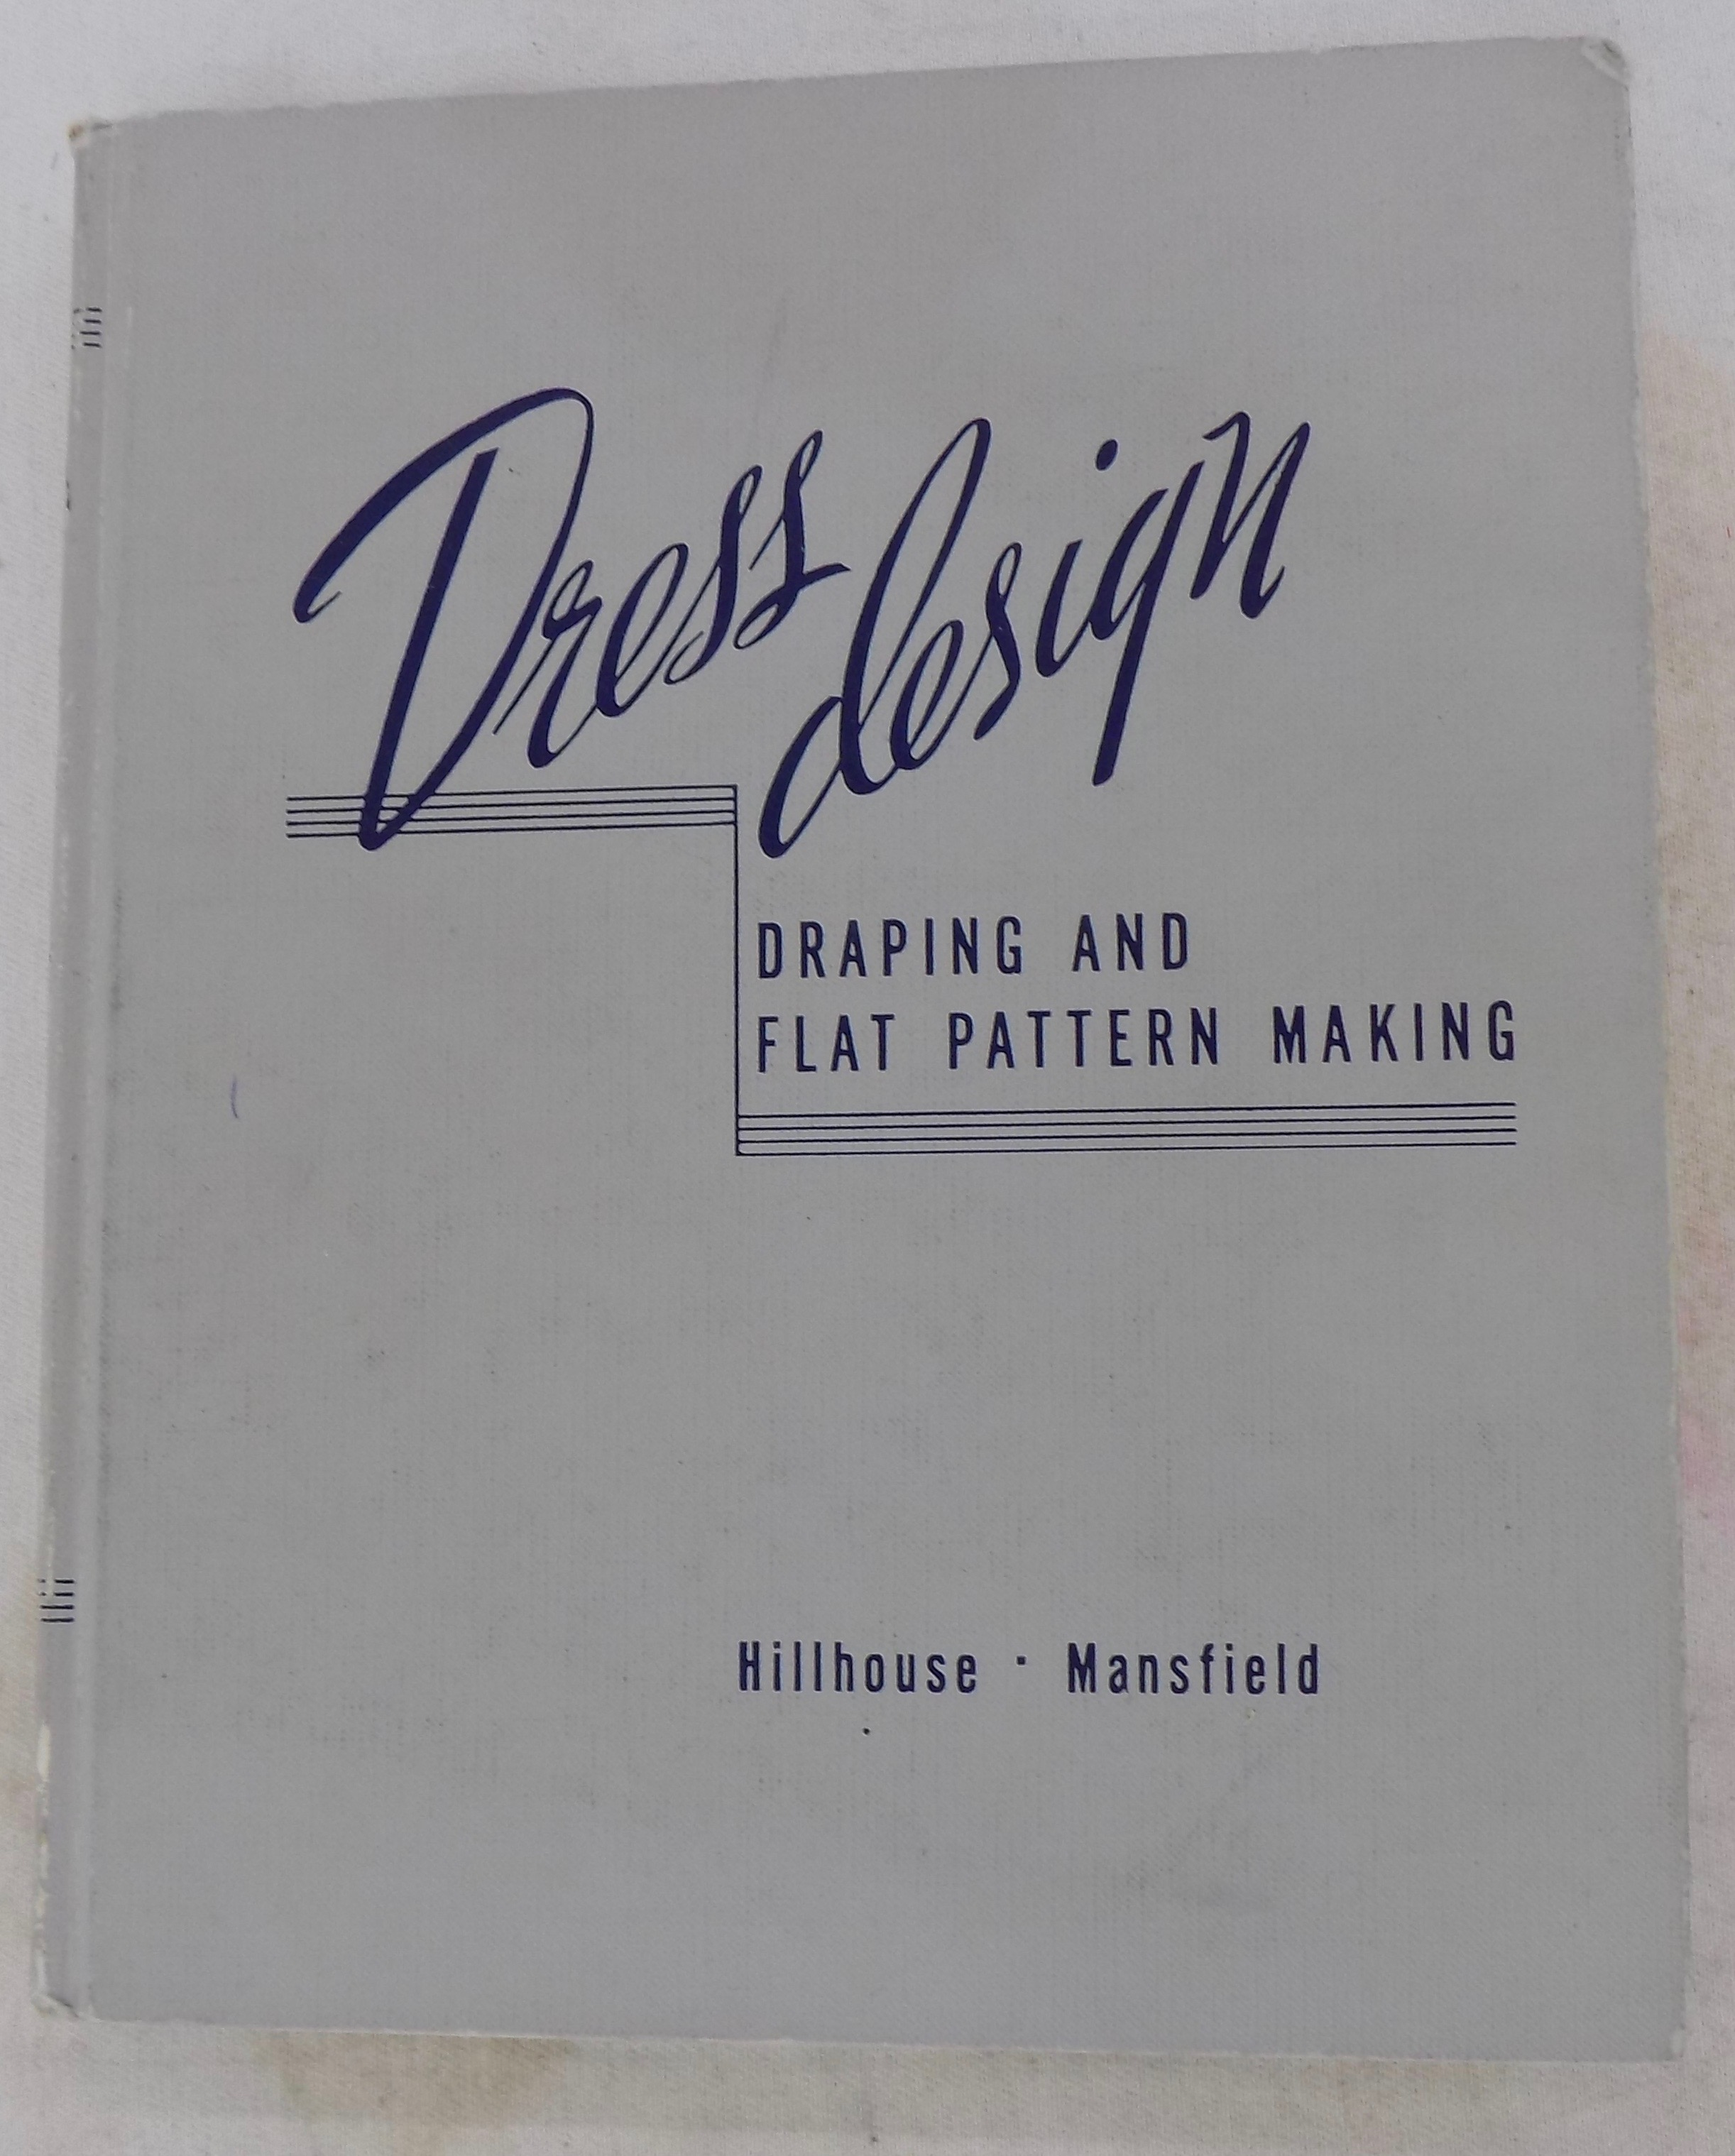 Sewing classes in Chicago: tchad: workroom: studio: books: dress design: millhouse: mansfield: draping: flat pattern: pattern making